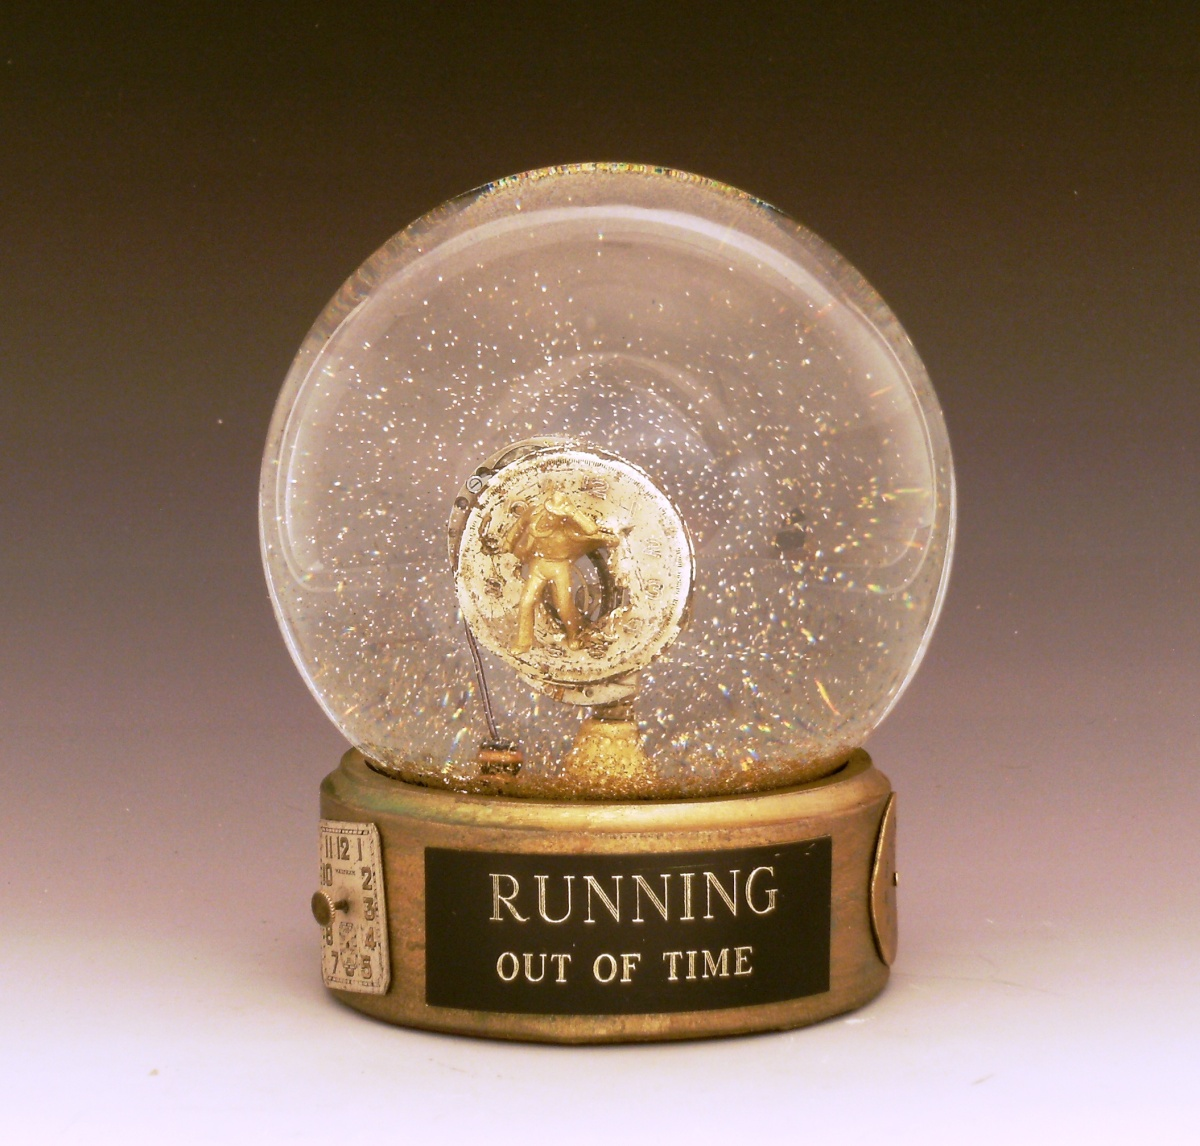 Running Out of Time_snowglobe by Camryn Forrest Design